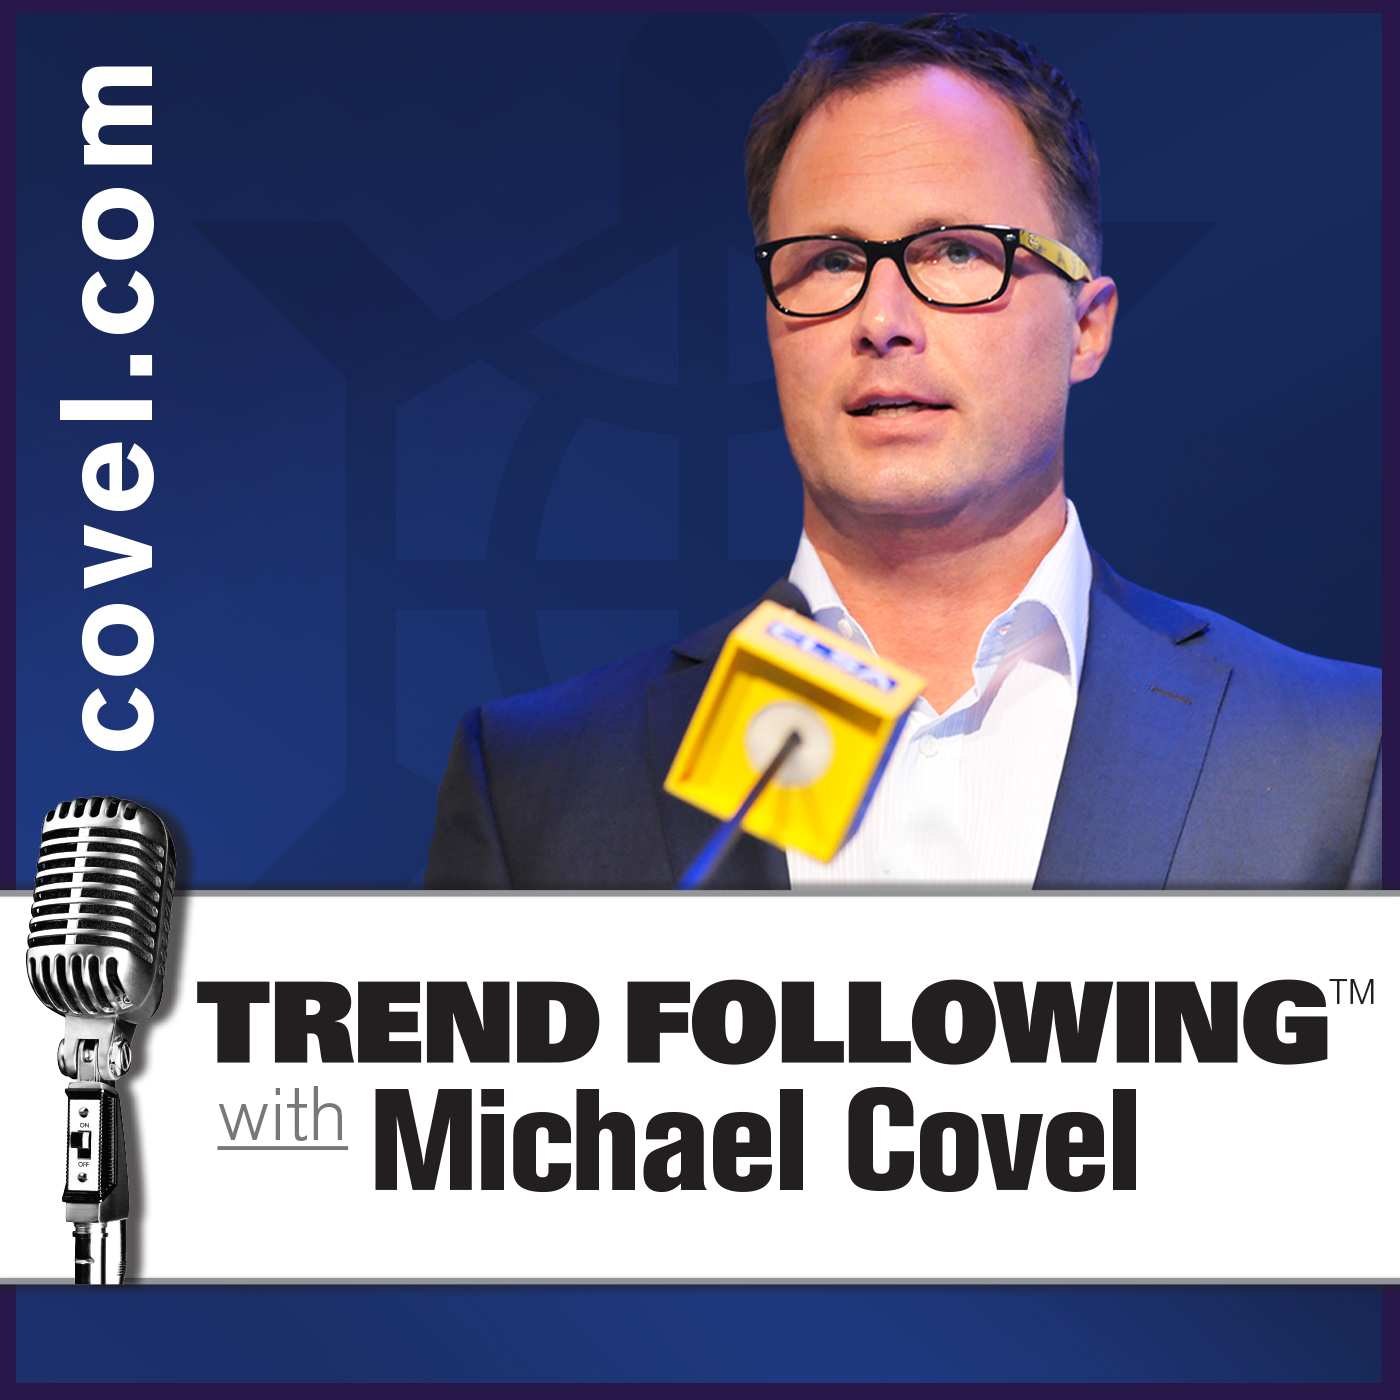 Ep. 491: Brian Christian Interview with Michael Covel on Trend Following Radio